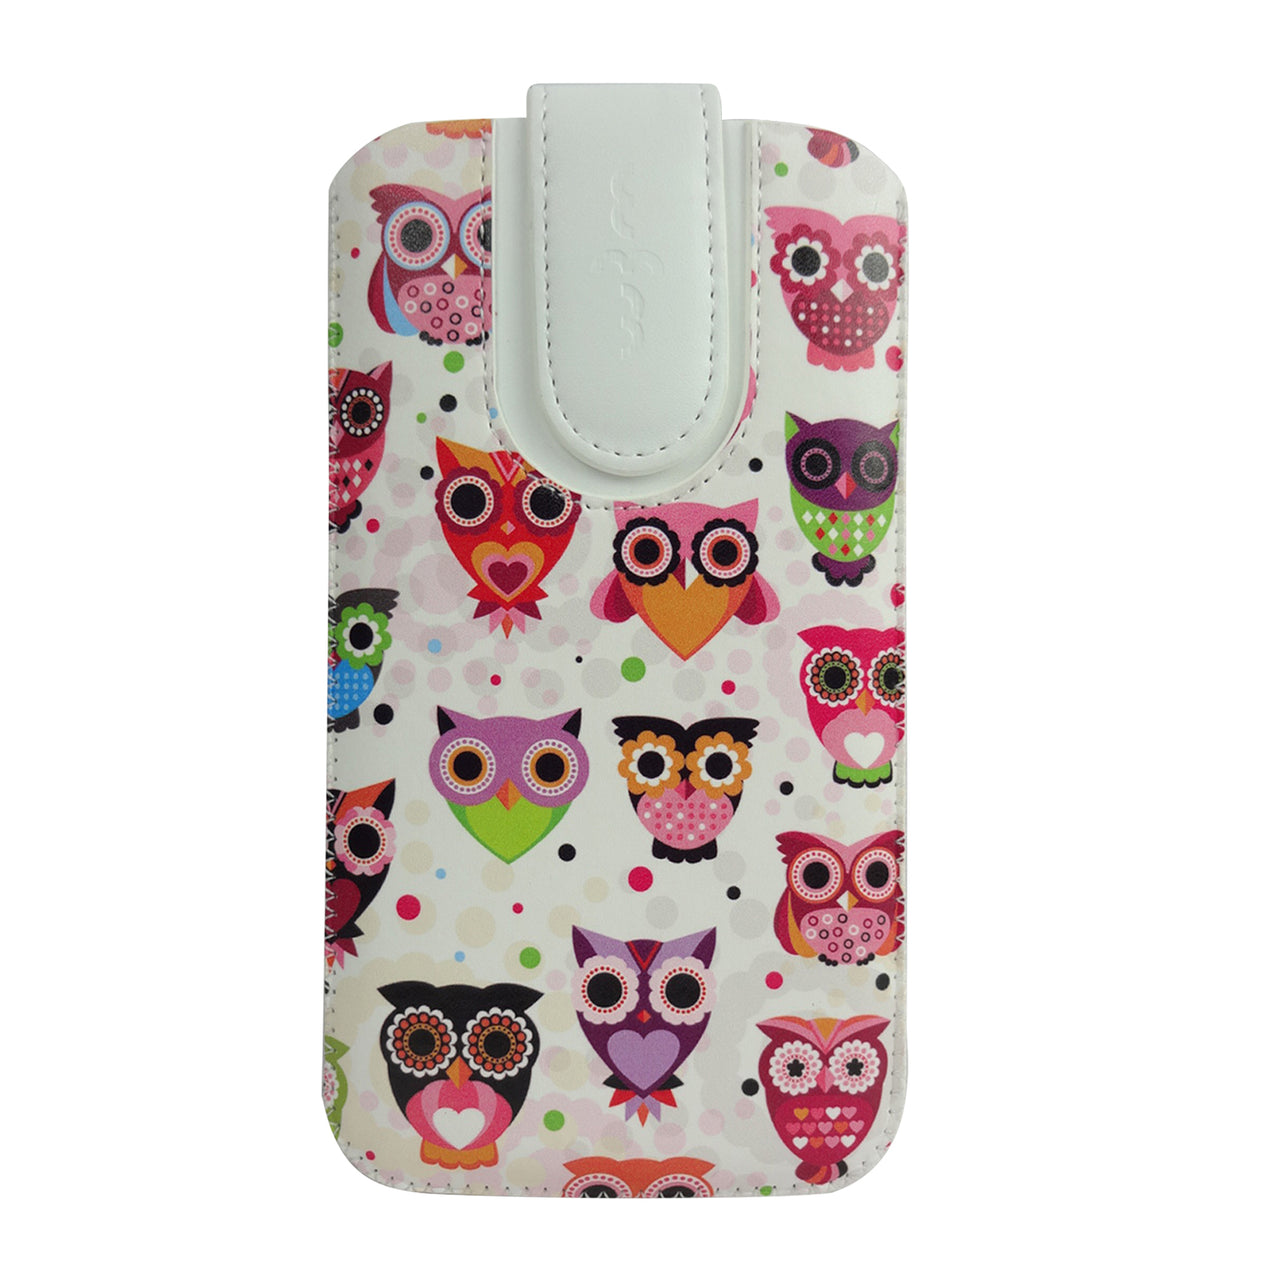 Universal Phone Pouch - Owls